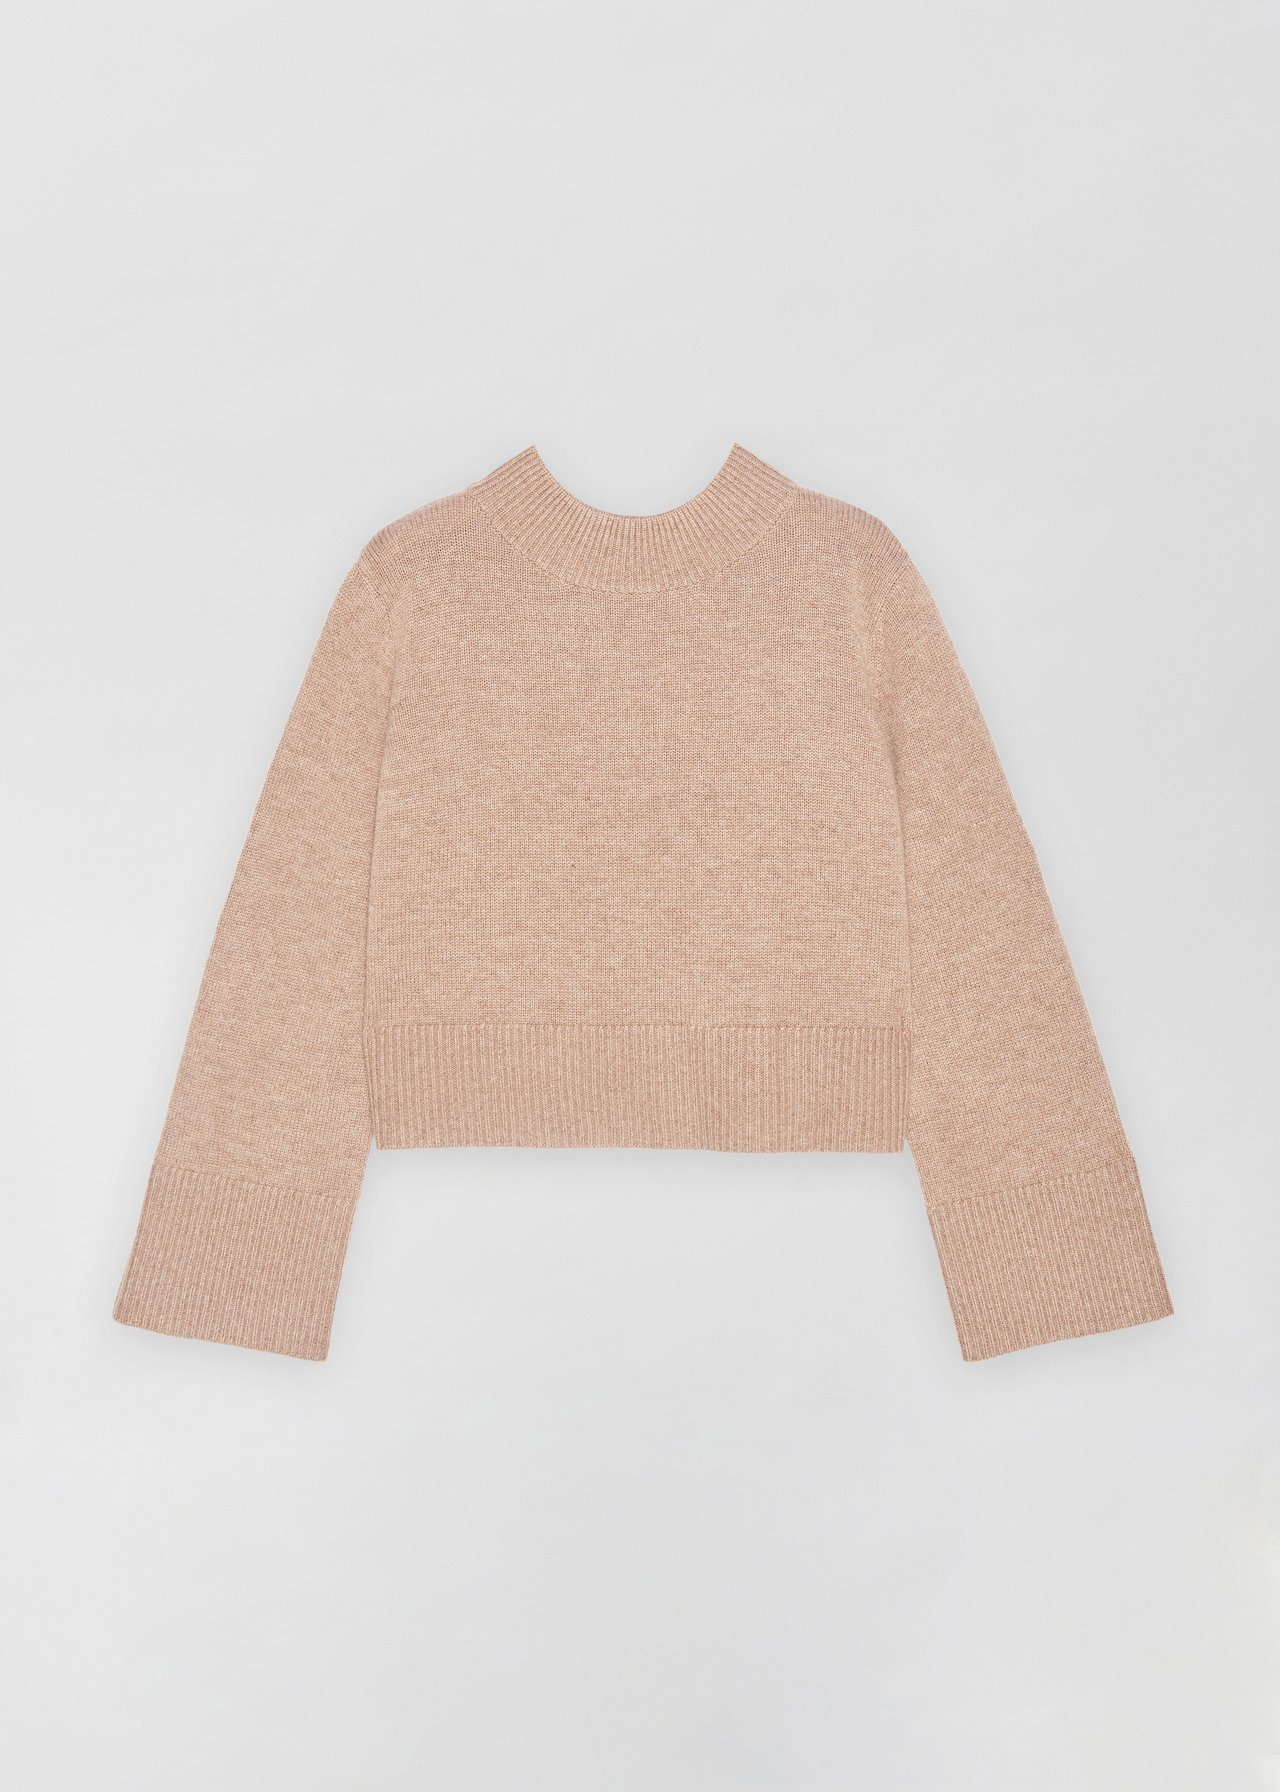 Boxy Crew Neck Sweater - Dove Grey in Taupe by Co Collections